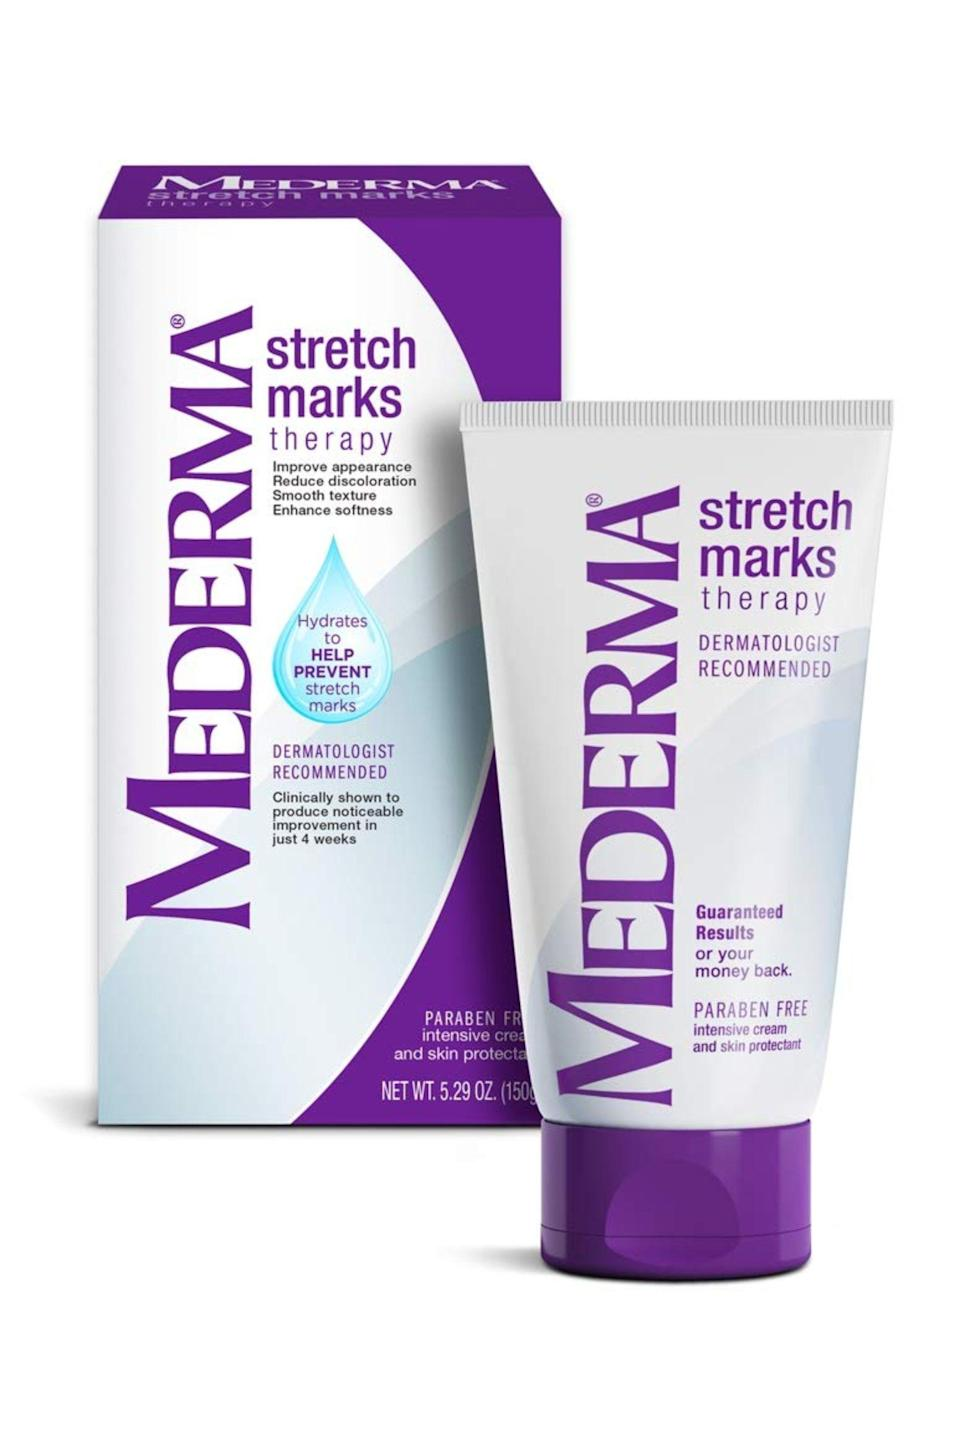 """<p><strong>Mederma</strong></p><p>amazon.com</p><p><strong>$52.00</strong></p><p><a href=""""http://www.amazon.com/dp/B002ZG94UY/?tag=syn-yahoo-20&ascsubtag=%5Bartid%7C10049.g.23323942%5Bsrc%7Cyahoo-us"""" rel=""""nofollow noopener"""" target=""""_blank"""" data-ylk=""""slk:Shop Now"""" class=""""link rapid-noclick-resp"""">Shop Now</a></p><p>A favorite brand for scars of all kinds, Mederma has a cream designed specially to tackle stretch marks, thanks to the active ingredient <a href=""""https://www.cosmopolitan.com/style-beauty/beauty/a32891698/what-is-dimethicone-for-skin/"""" rel=""""nofollow noopener"""" target=""""_blank"""" data-ylk=""""slk:dimethicone"""" class=""""link rapid-noclick-resp"""">dimethicone</a> (a silicone) and hyaluronic acid, both of which have been shown to improve or reduce the appearance of stretch marks, according to Dr. Rabach. <strong>When stretch marks are brand new, they're more responsive to topical treatments, </strong>so give this stretch mark cream a try as soon as you notice new streaks.</p>"""